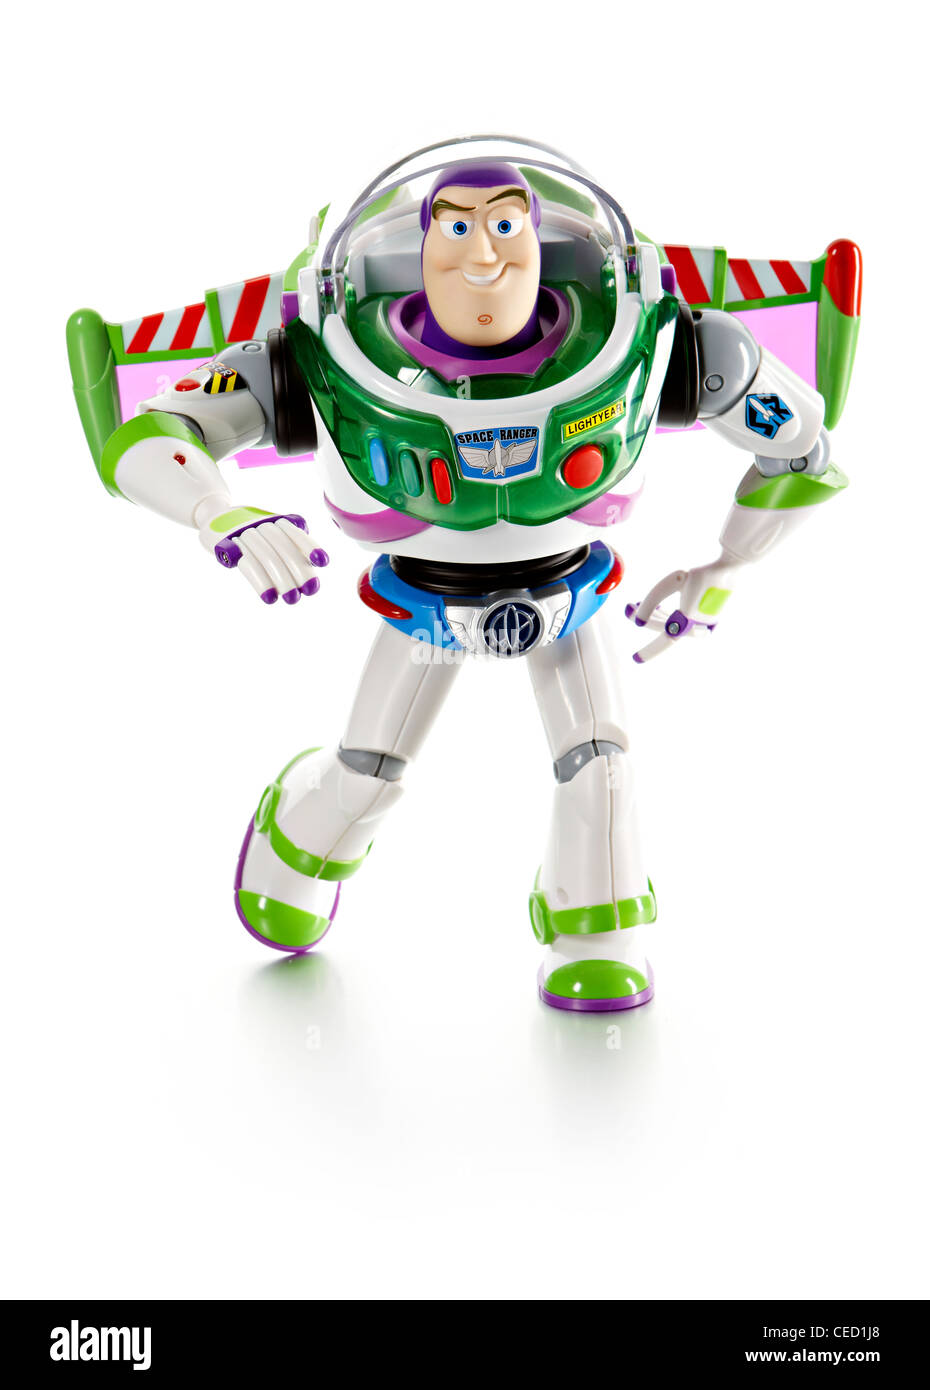 Buzz Lightyear toy story film soft toy official merchandise - Stock Image